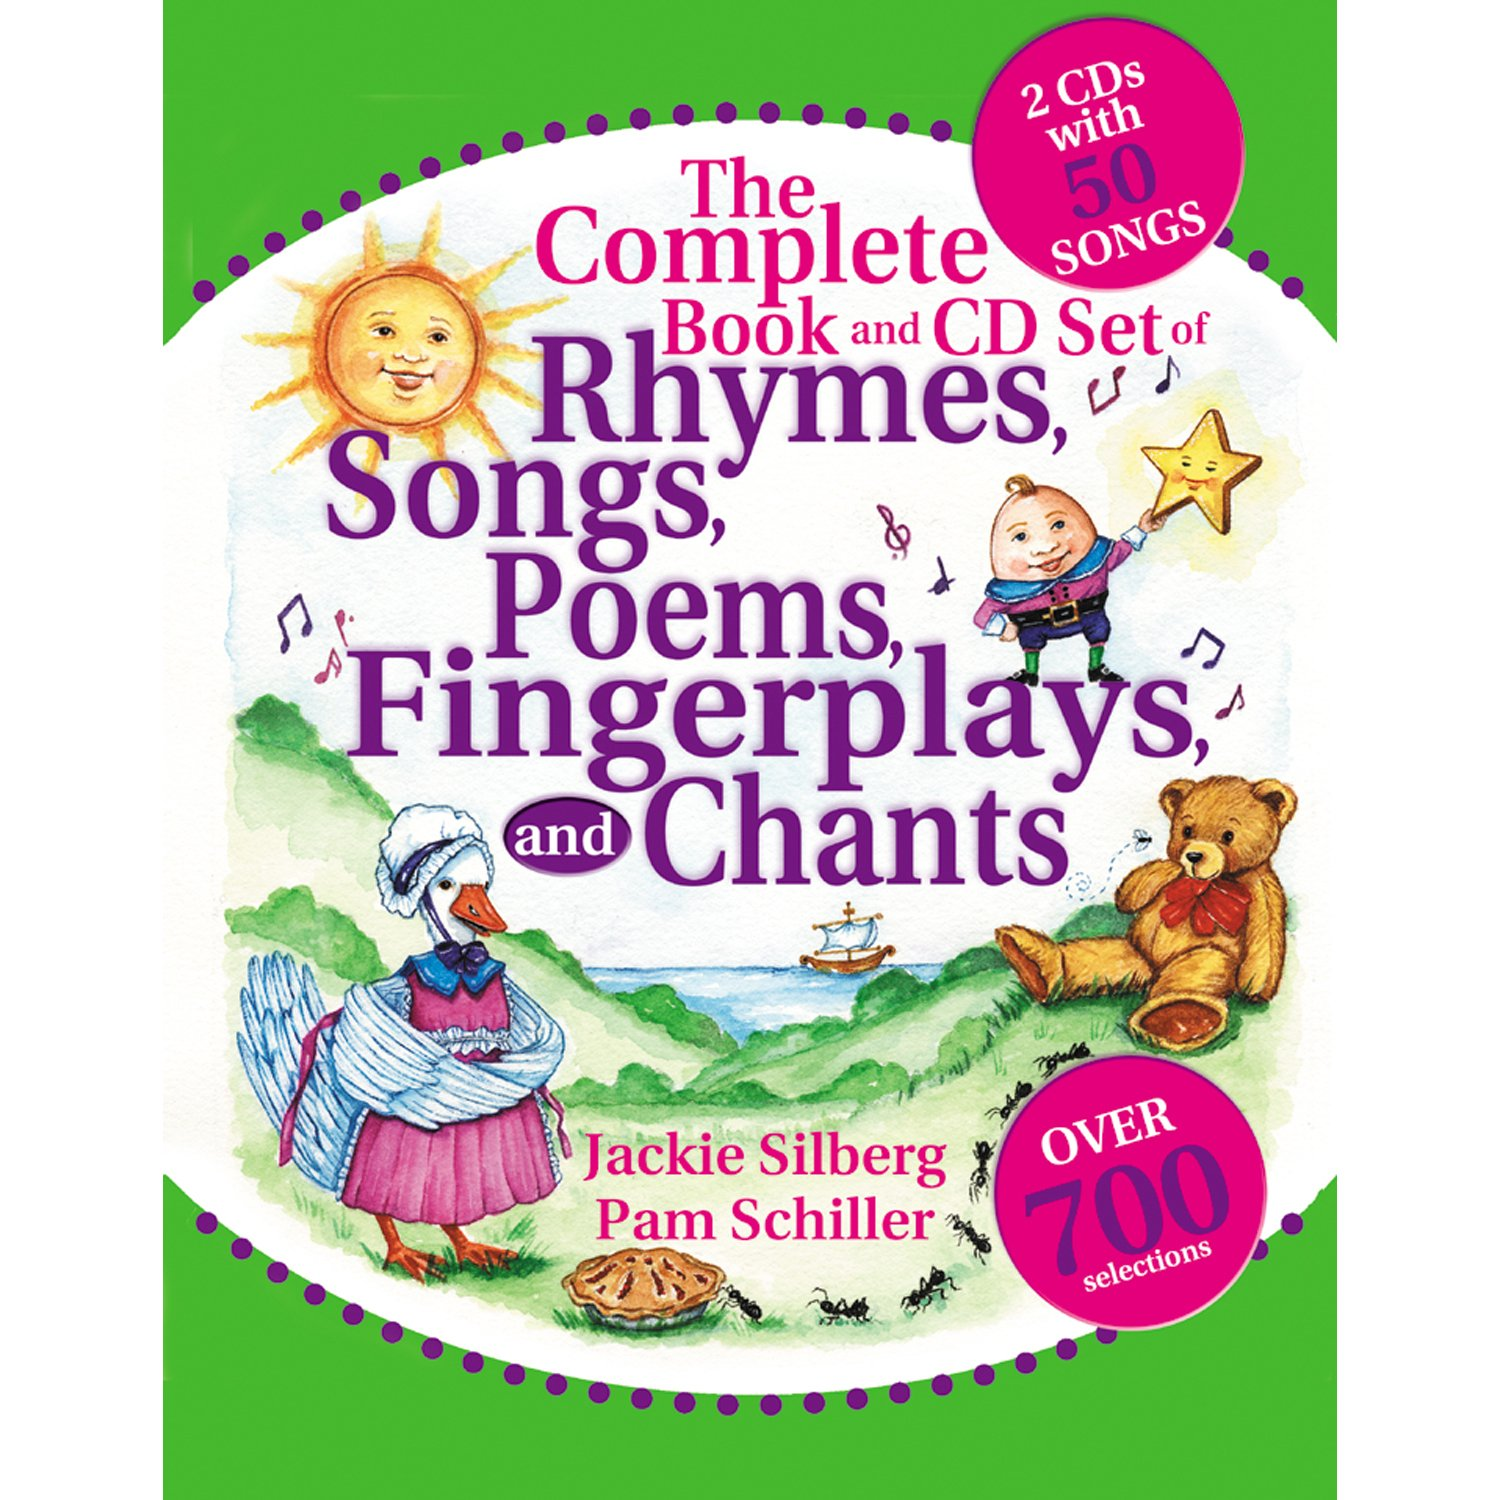 The Complete Book and CD Set of Rhymes, Songs, Poems, Fingerplays, and Chants (Complete Book Series) by GRYPHON HOUSE